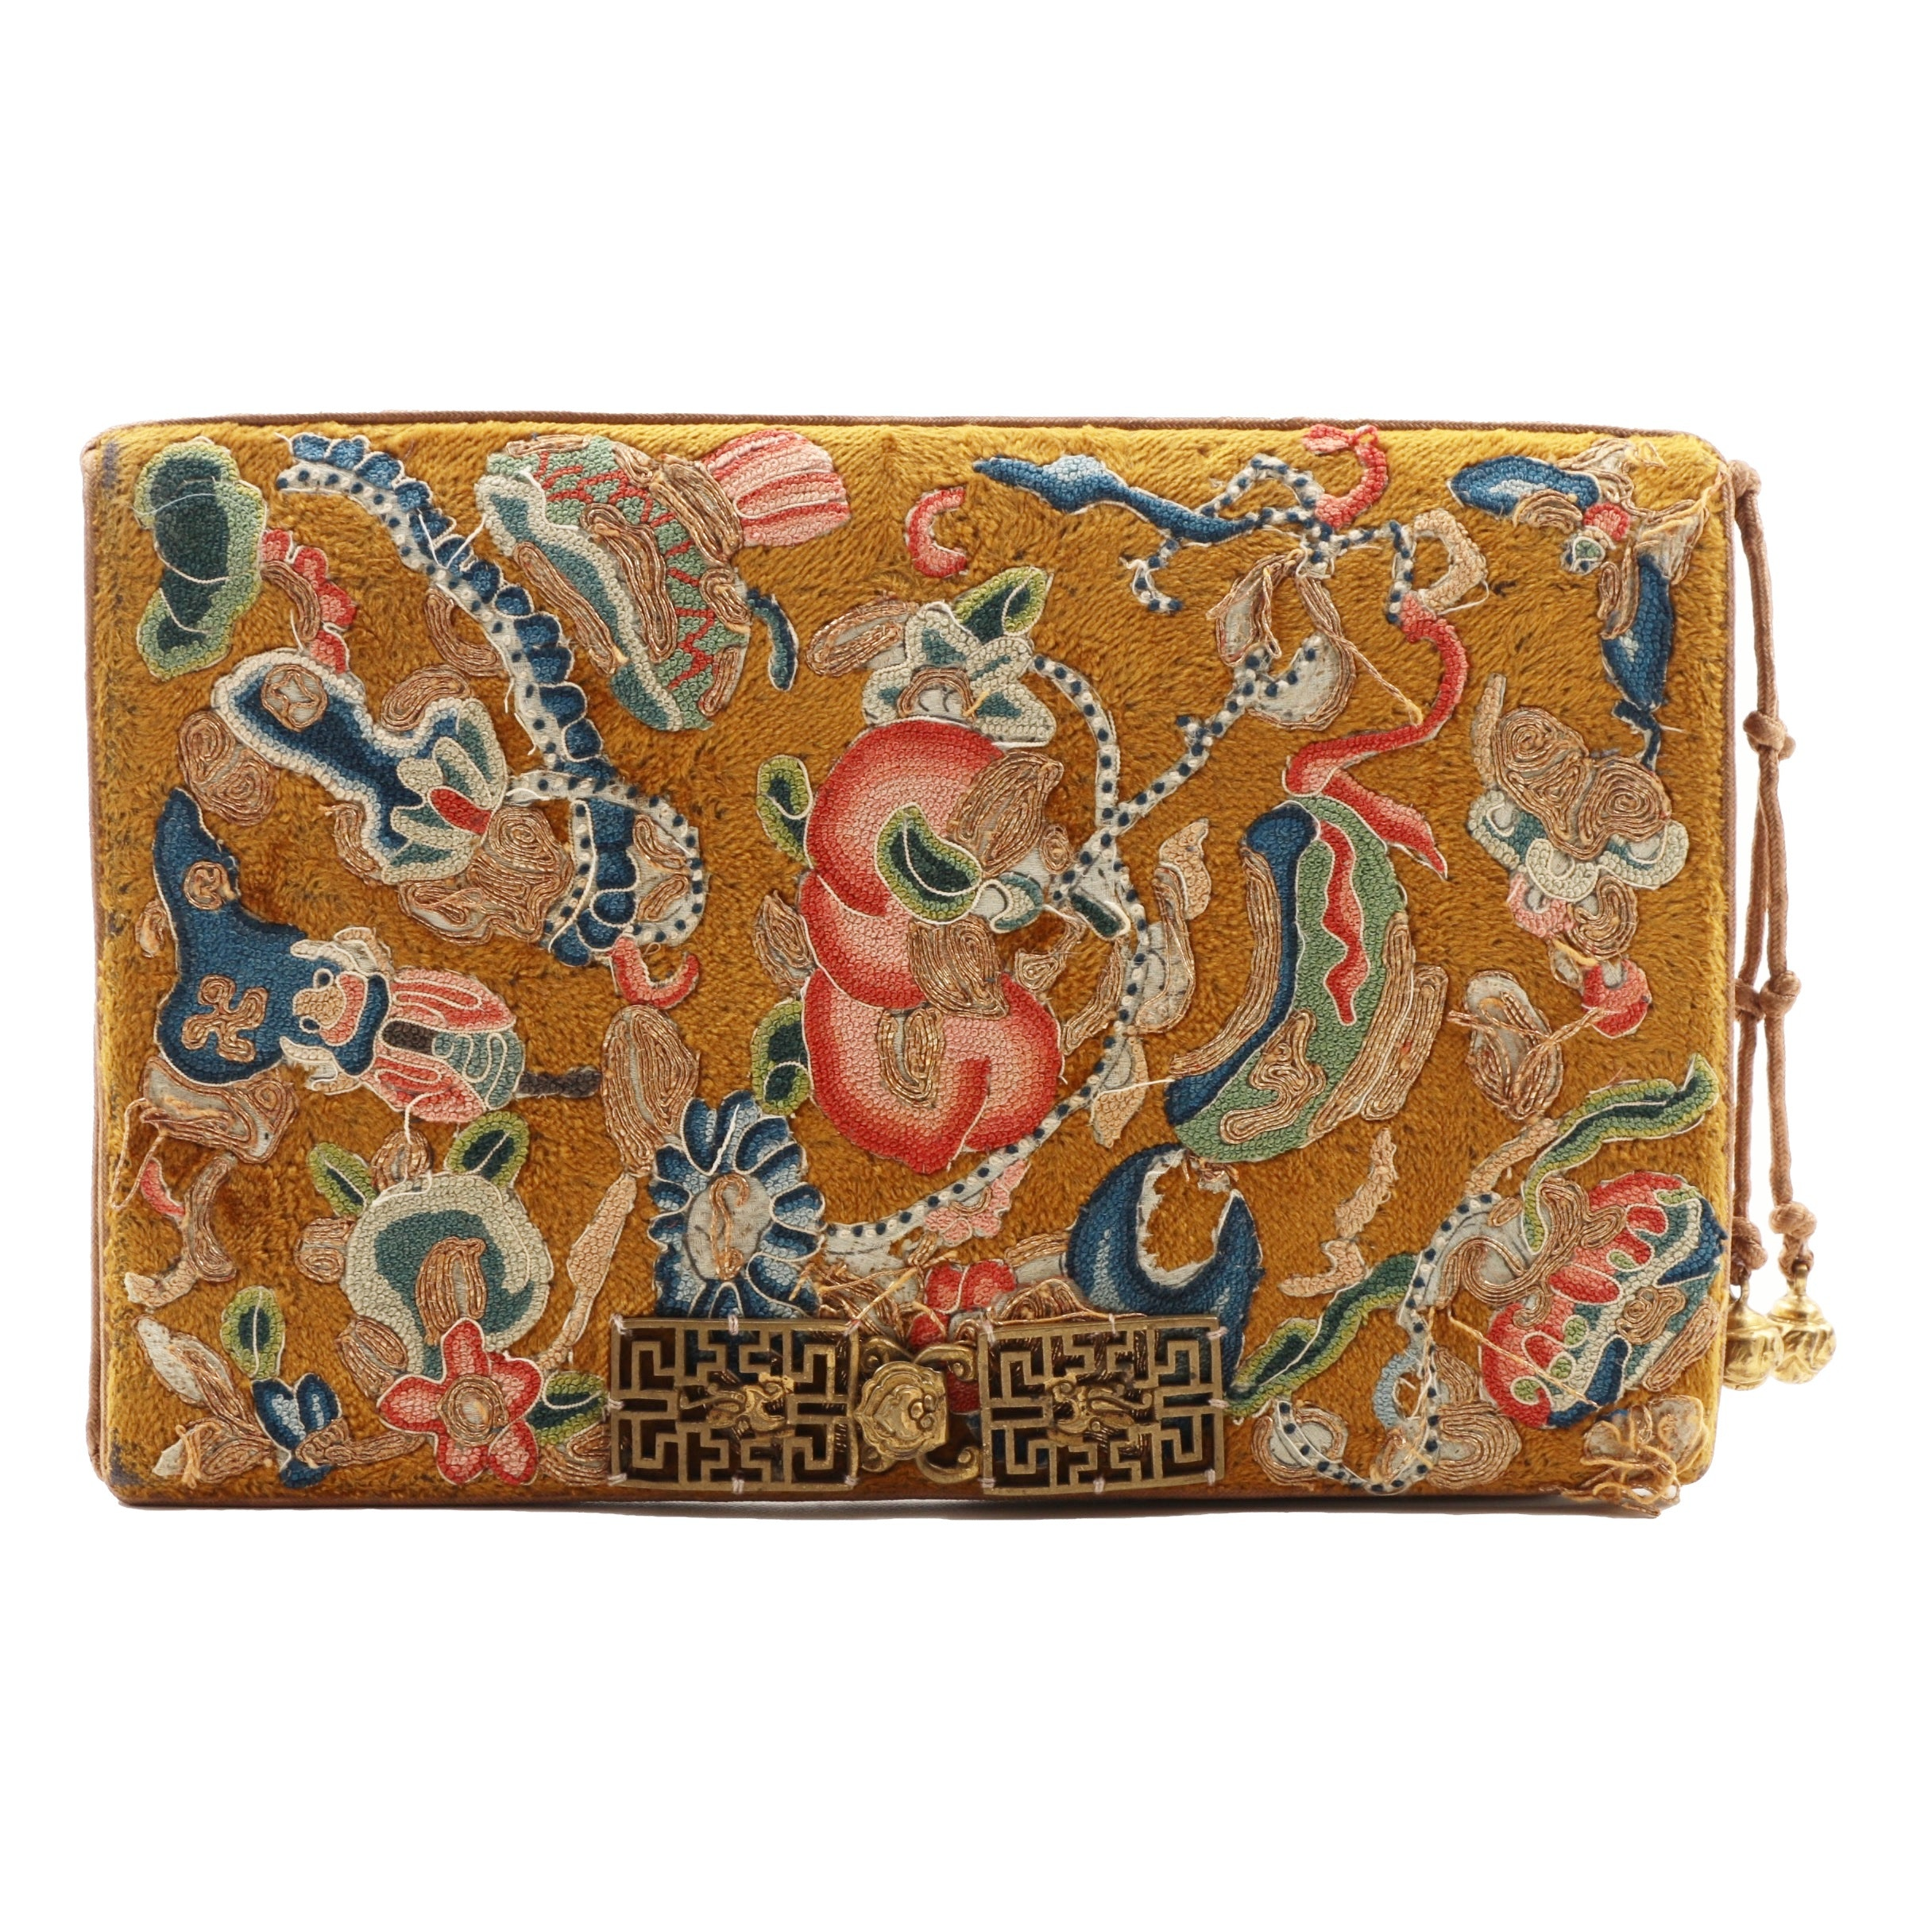 Circa 1920 Chinese Silk Forbidden Stitch Clutch Handbag